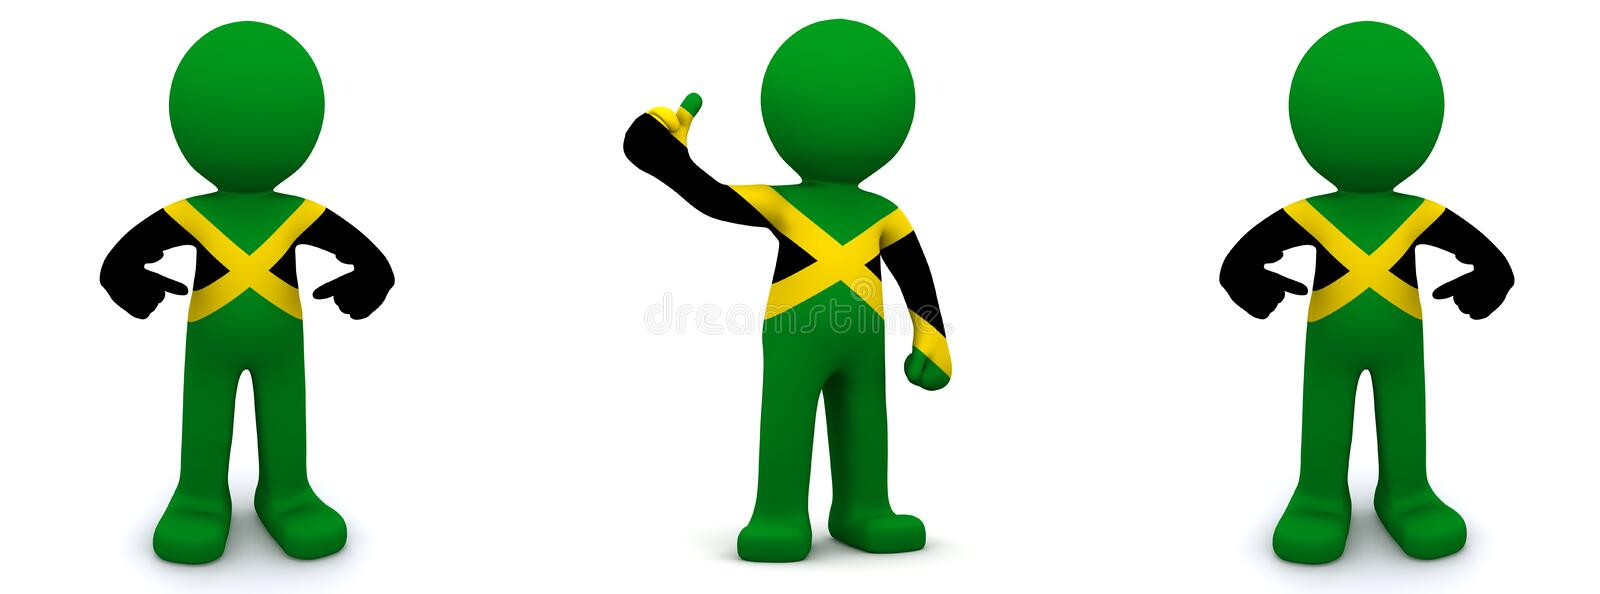 3d character textured with flag of Jamaica. Isolated on white background royalty free illustration